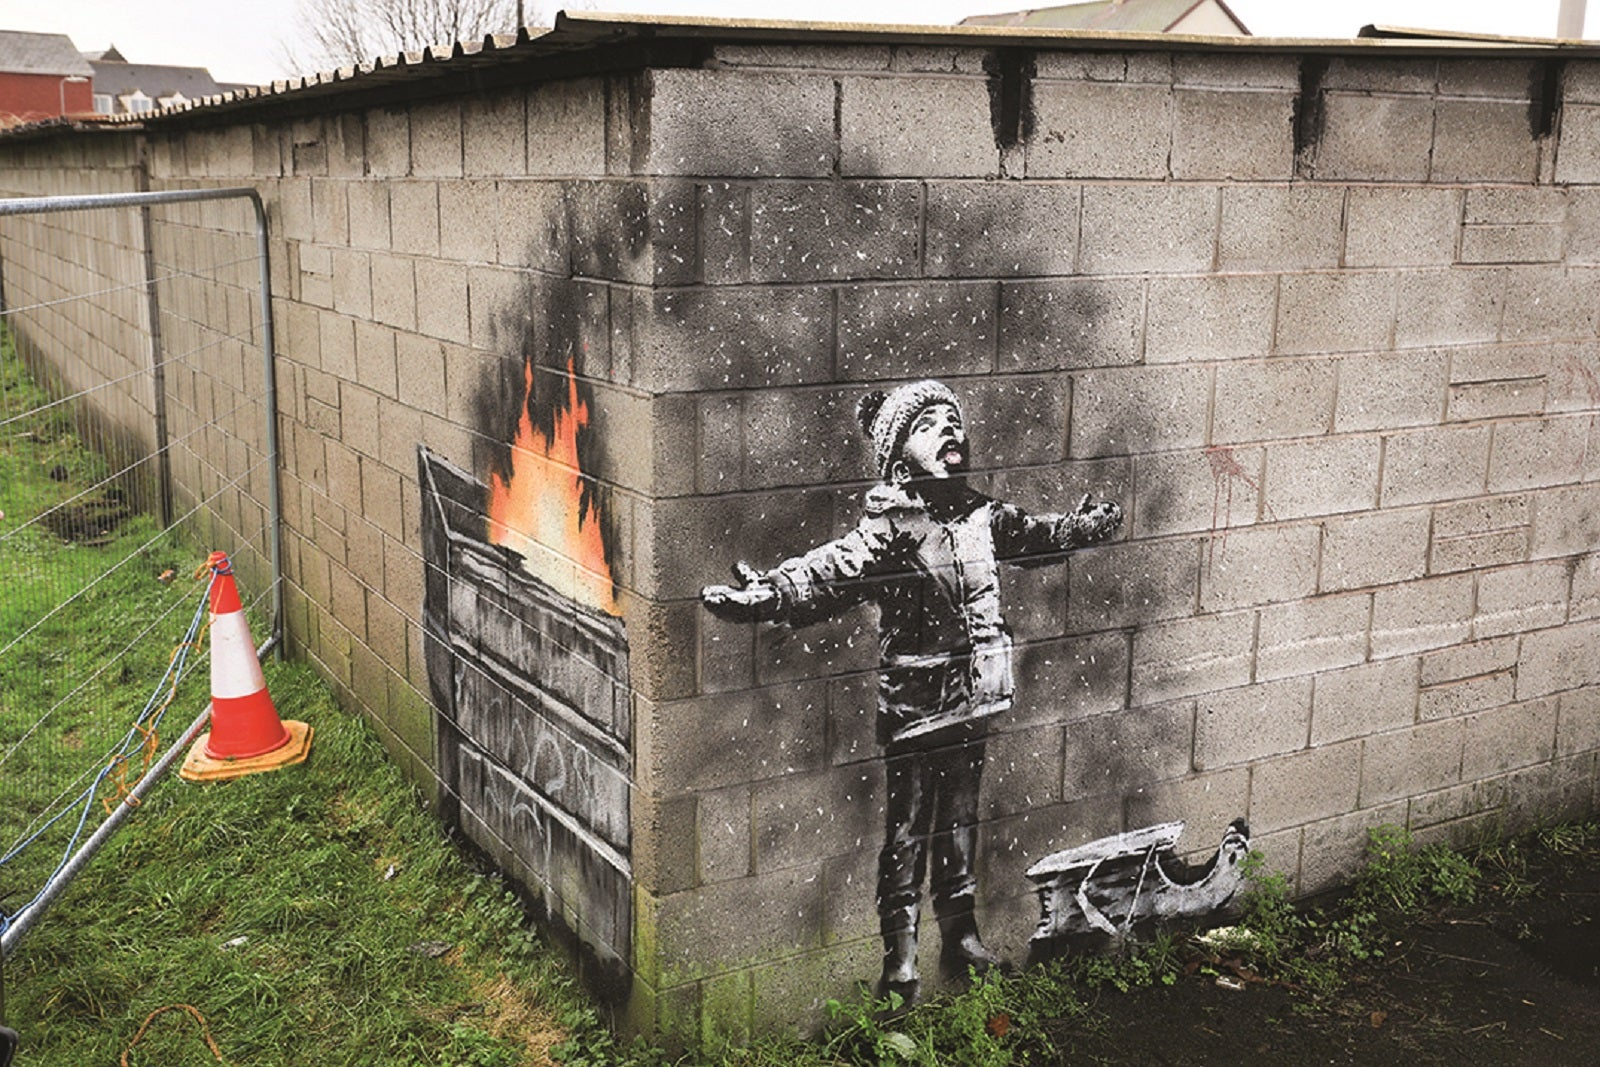 How to get a Banksy off the wall